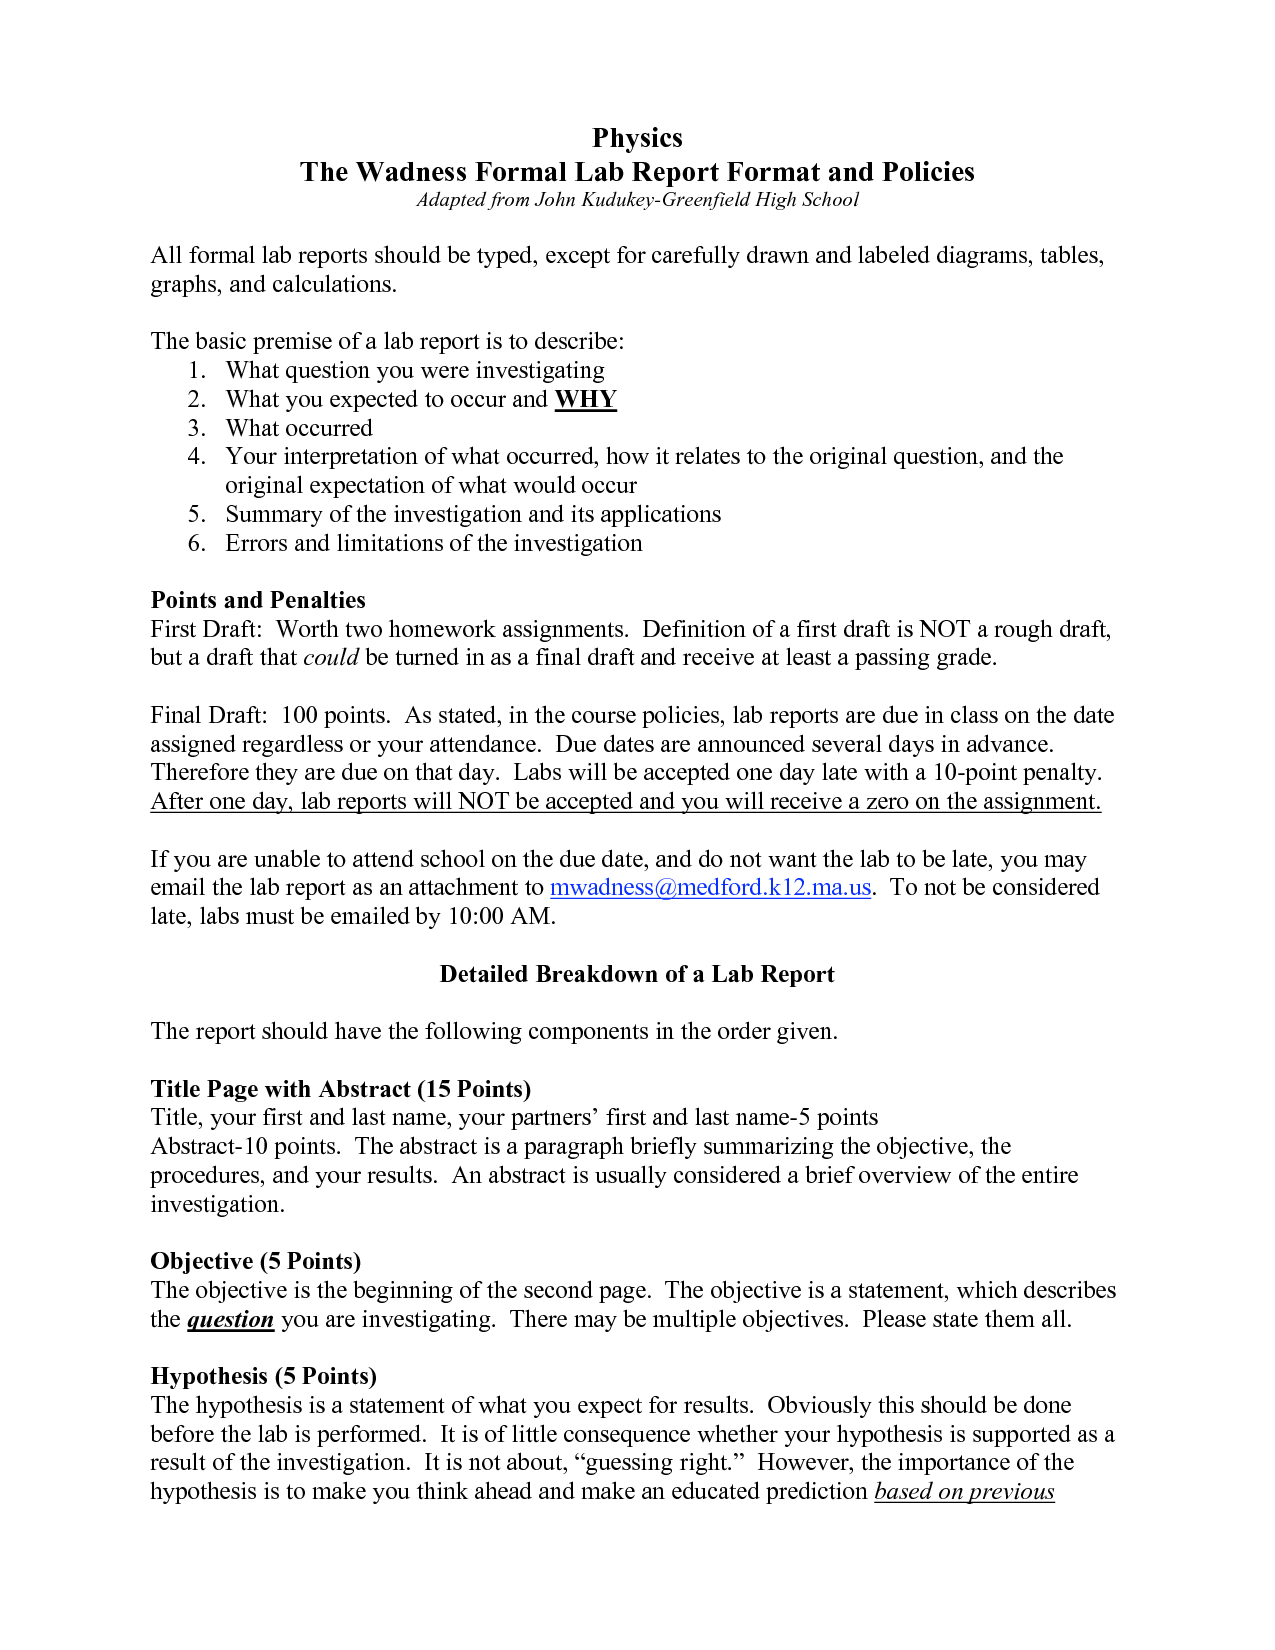 formal report format template – How to Write an Official Report Format